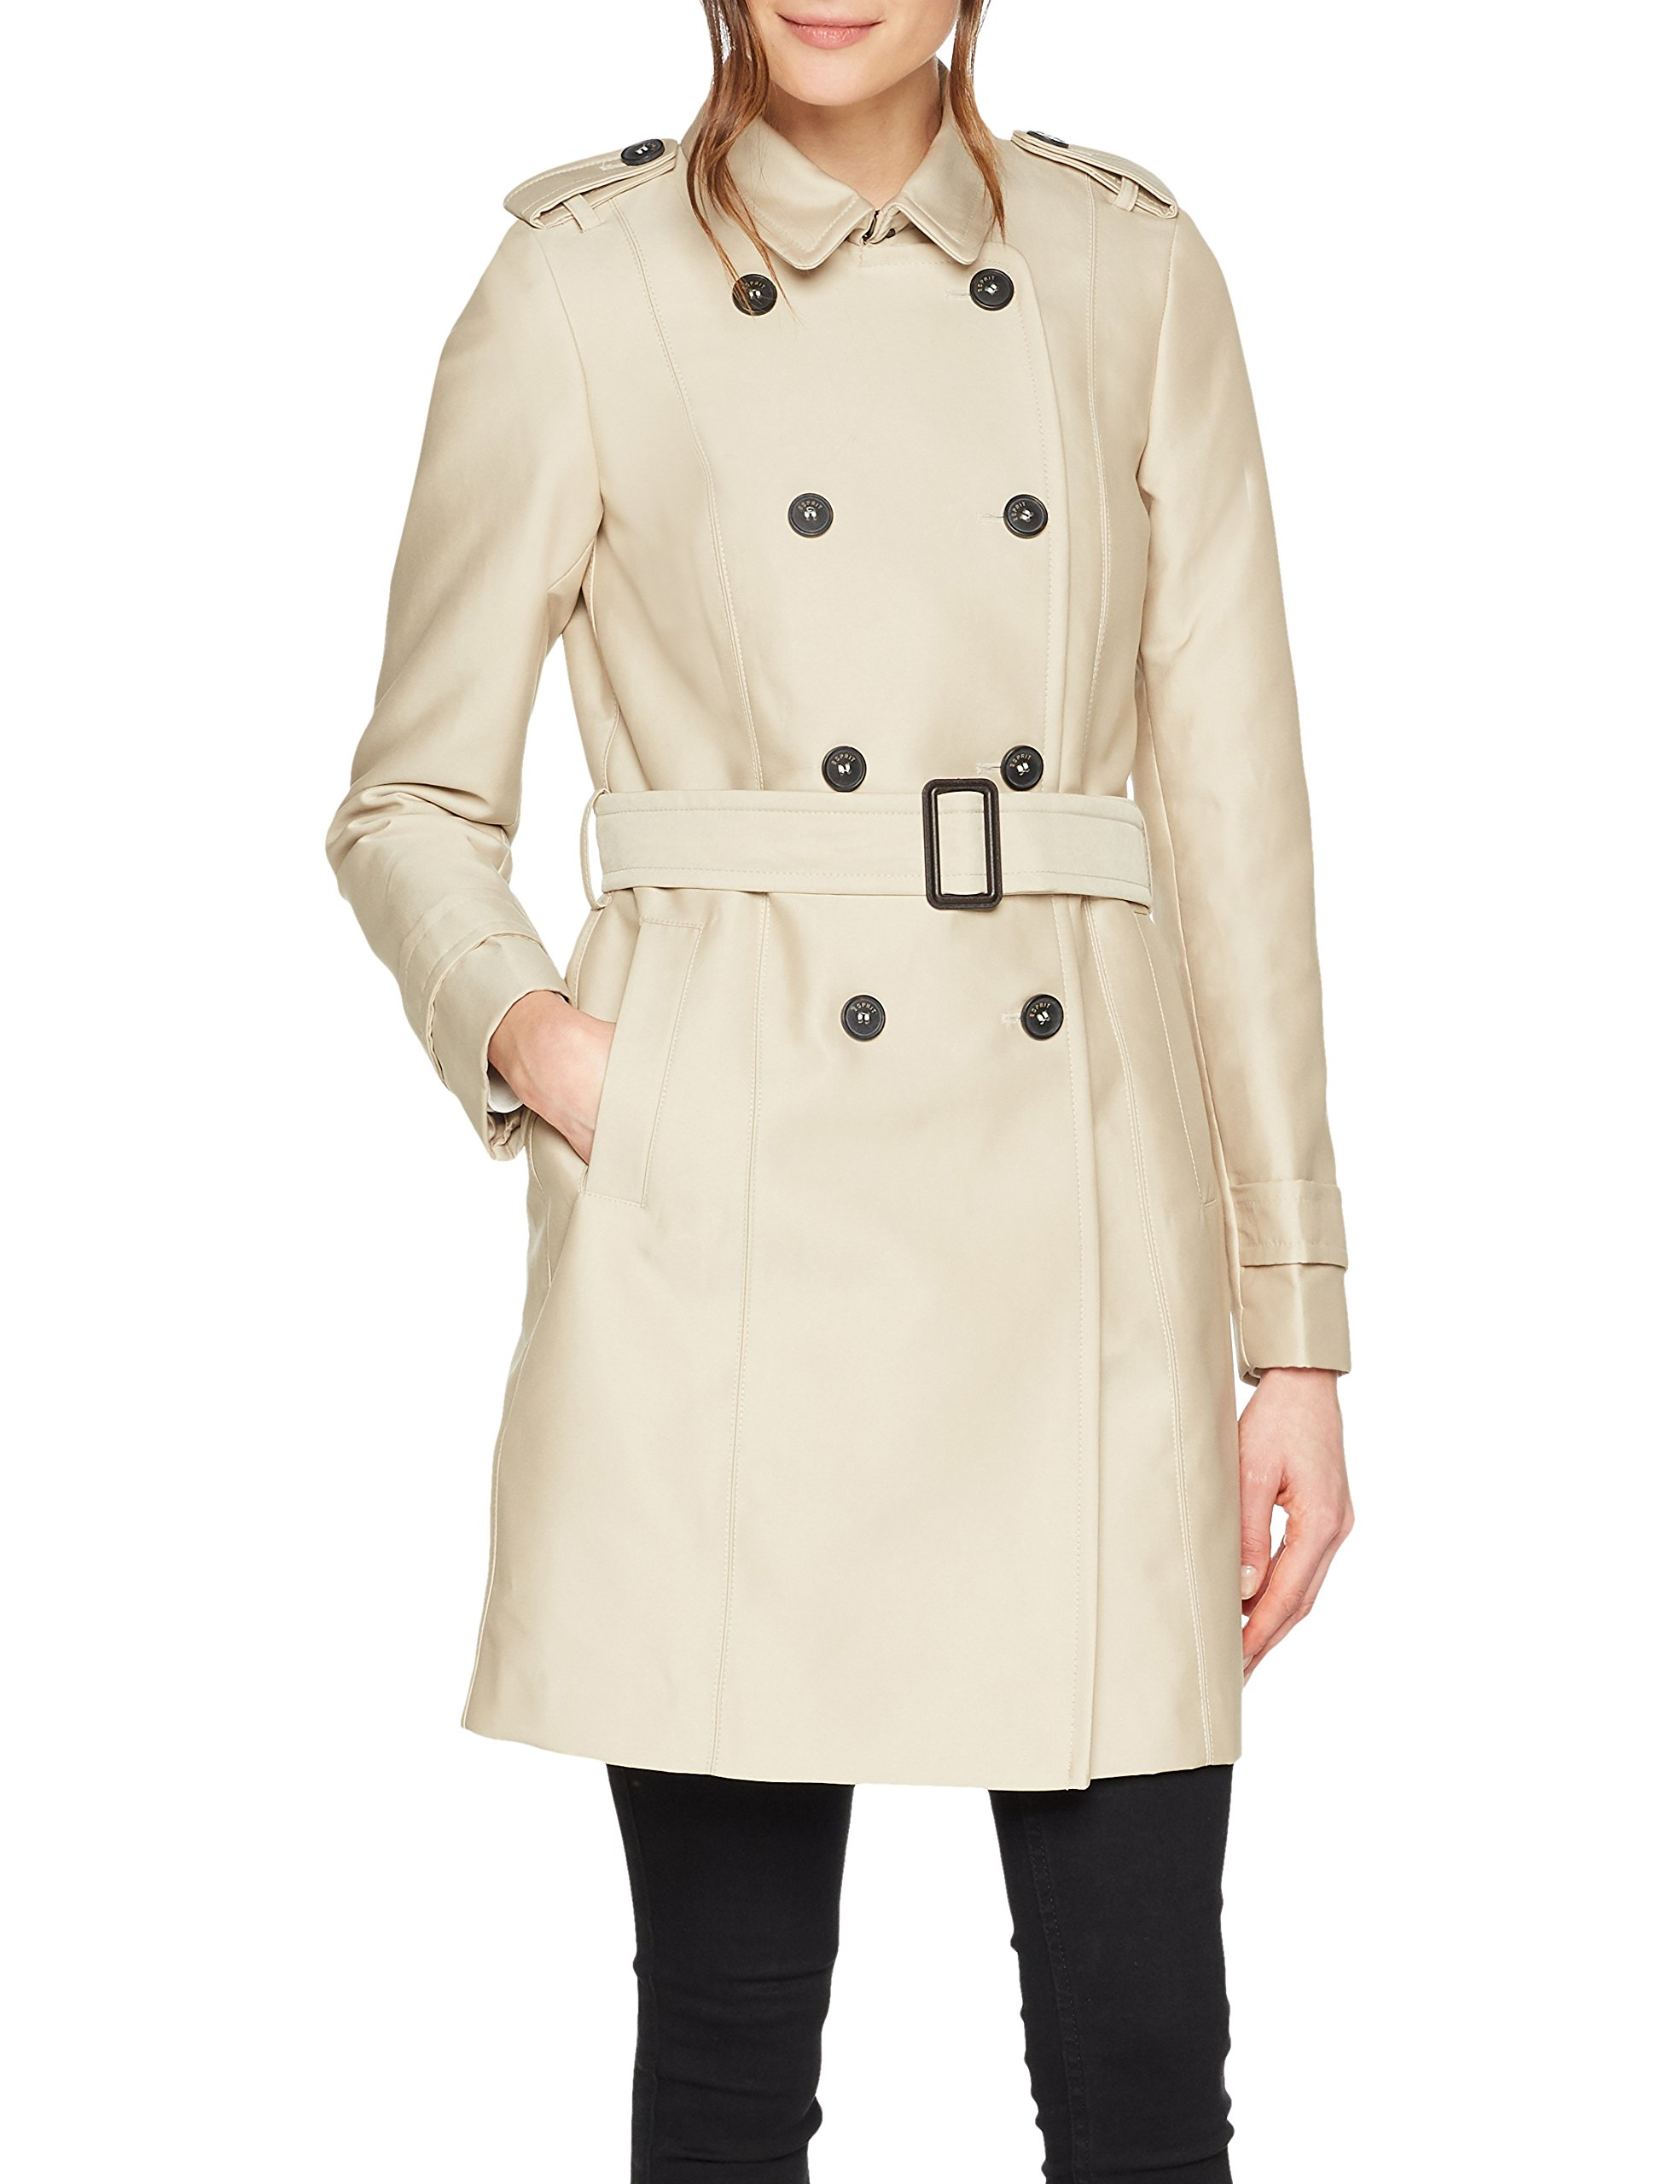 27040taille Collection Fabricant38Femme Esprit ManteauBeige 018eo1g016 7gf6IyvYbm